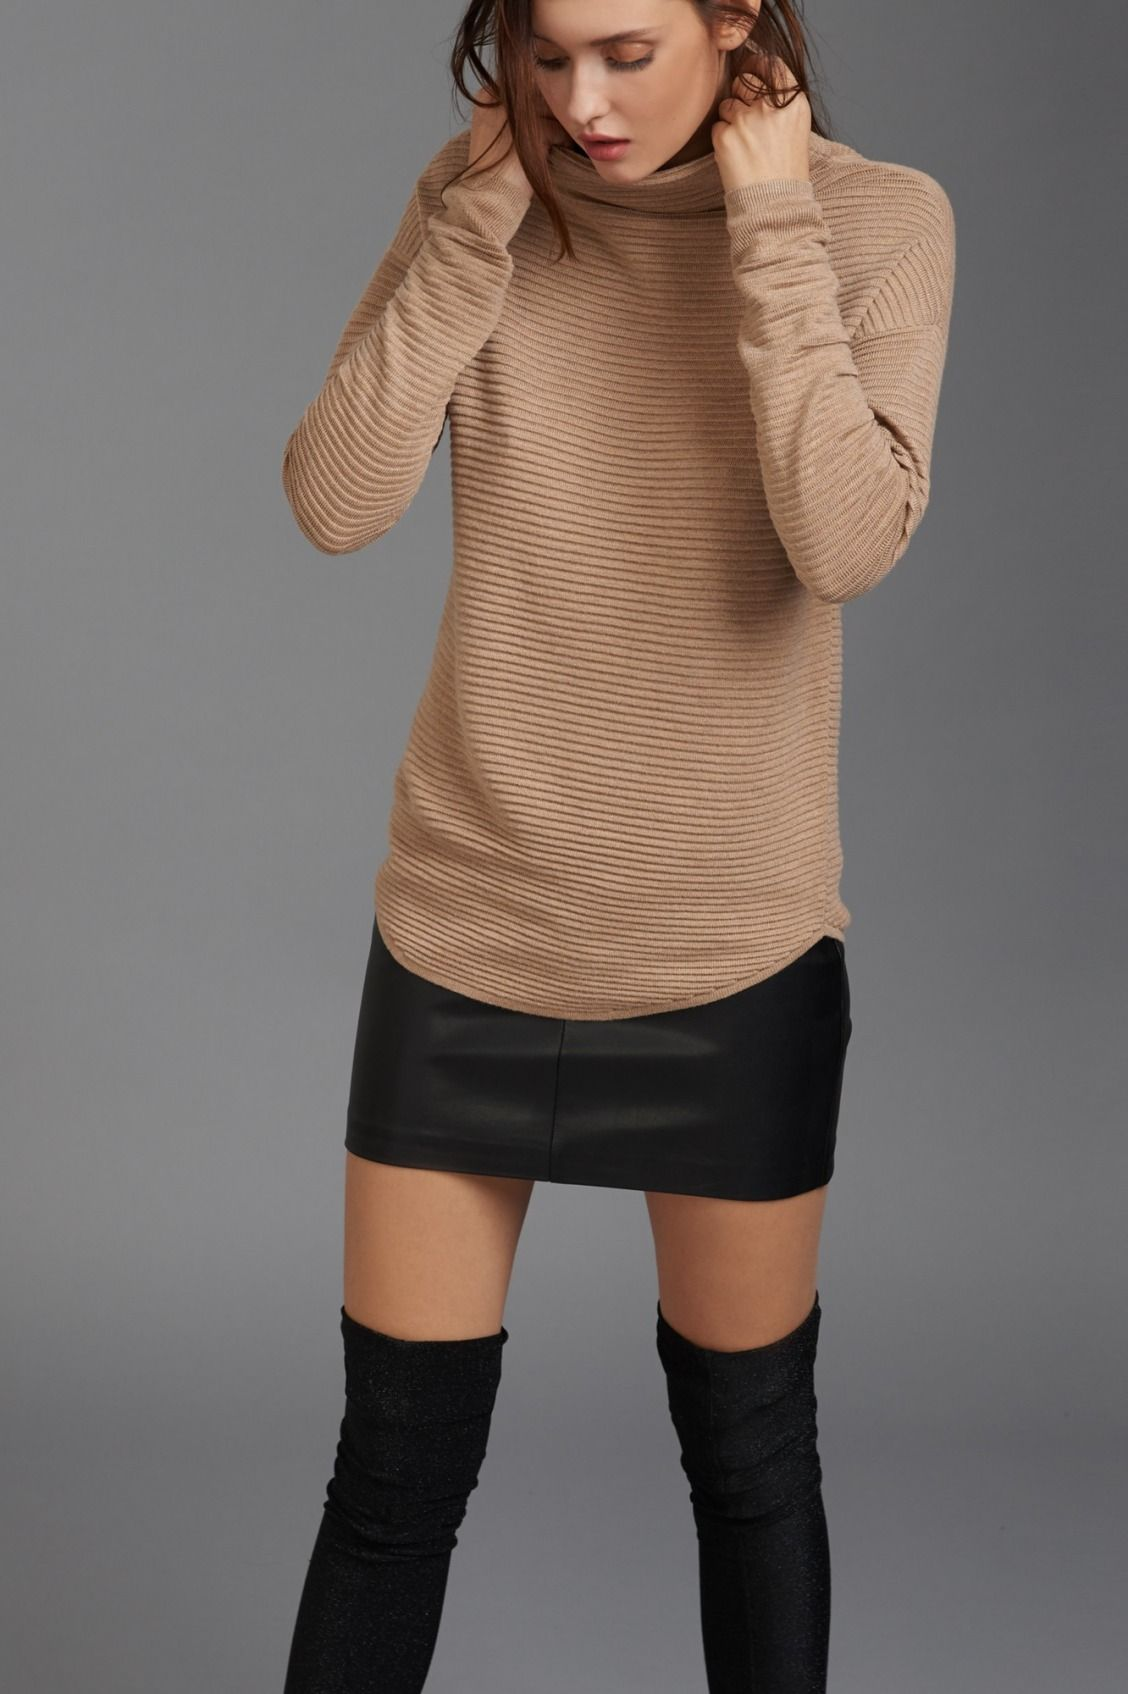 Rib me right Ribbed Cowl Neck Sweater | Fashion oui!! | Pinterest ...